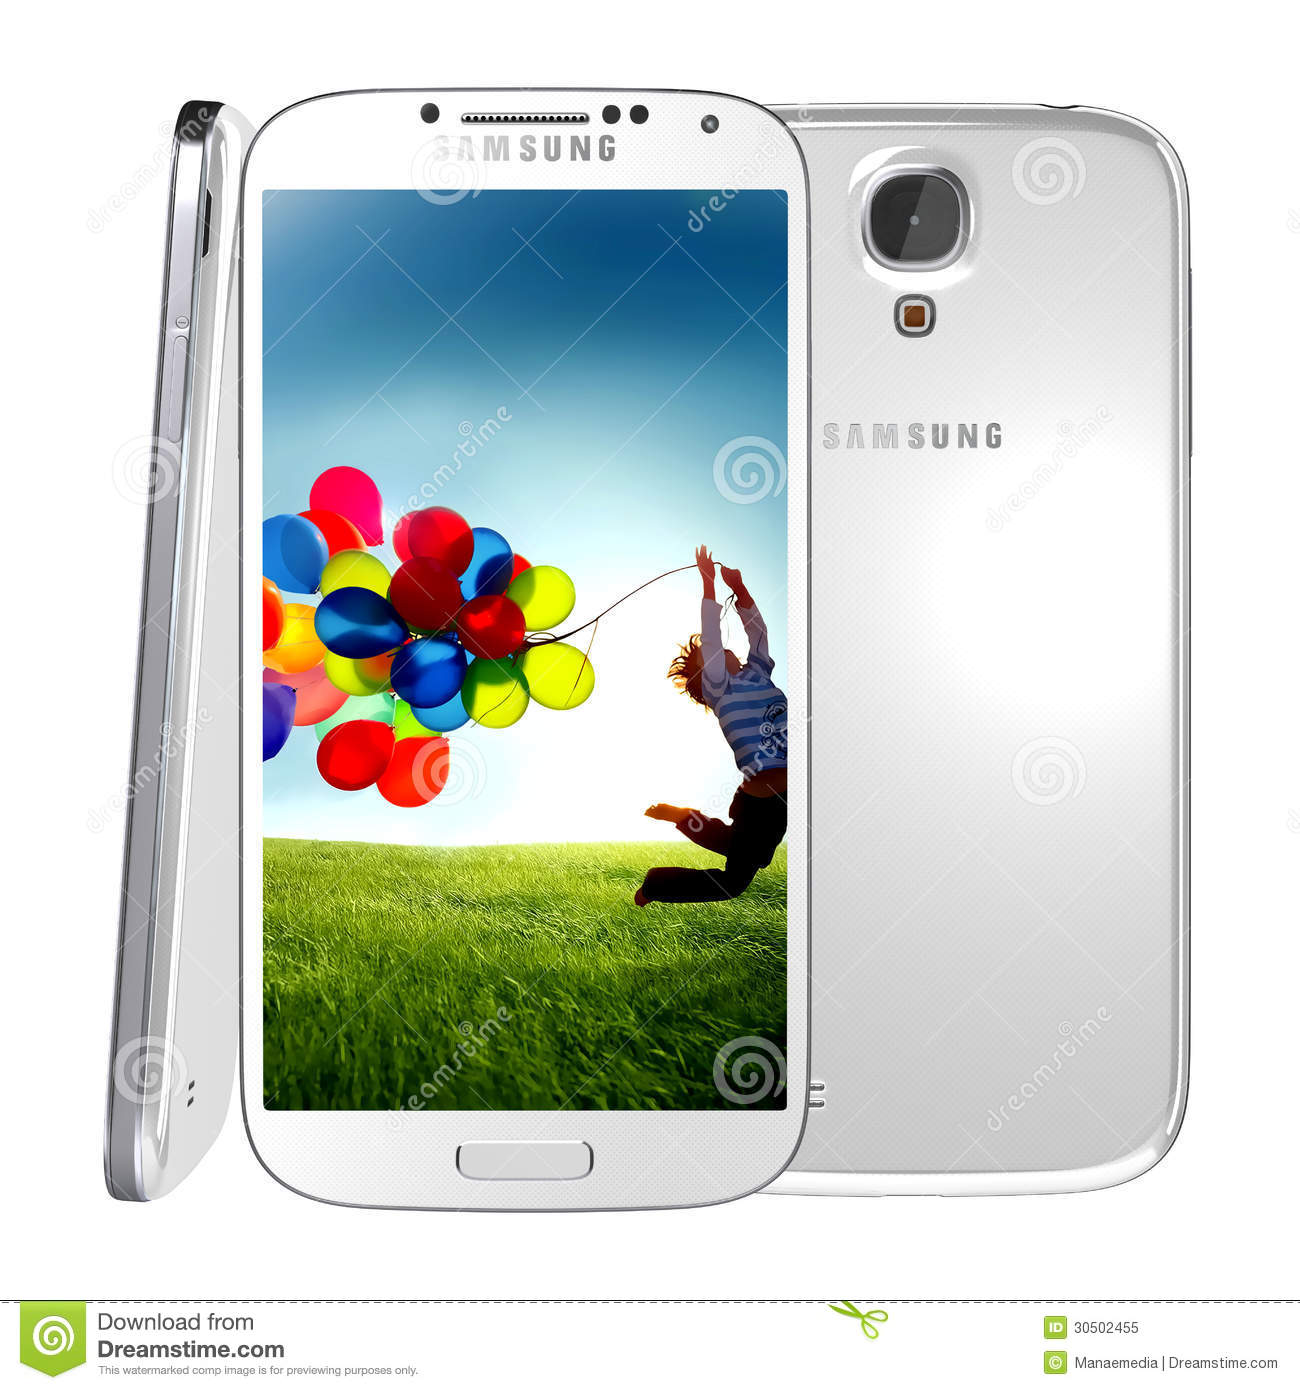 Samsung Galaxy S4 editorial image  Image of message, editorial